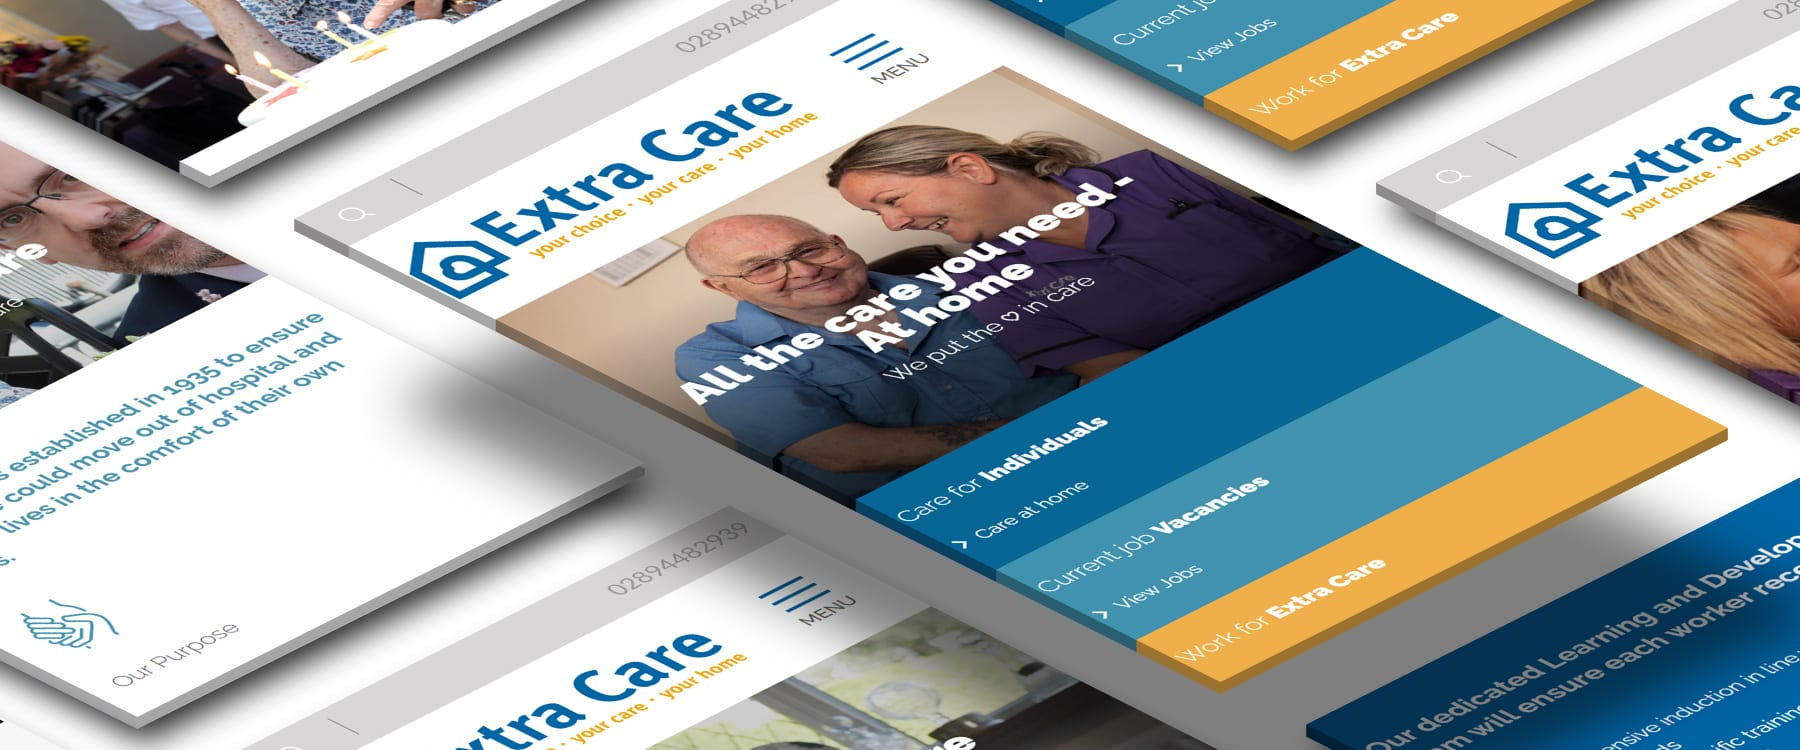 Extra Care Image Second